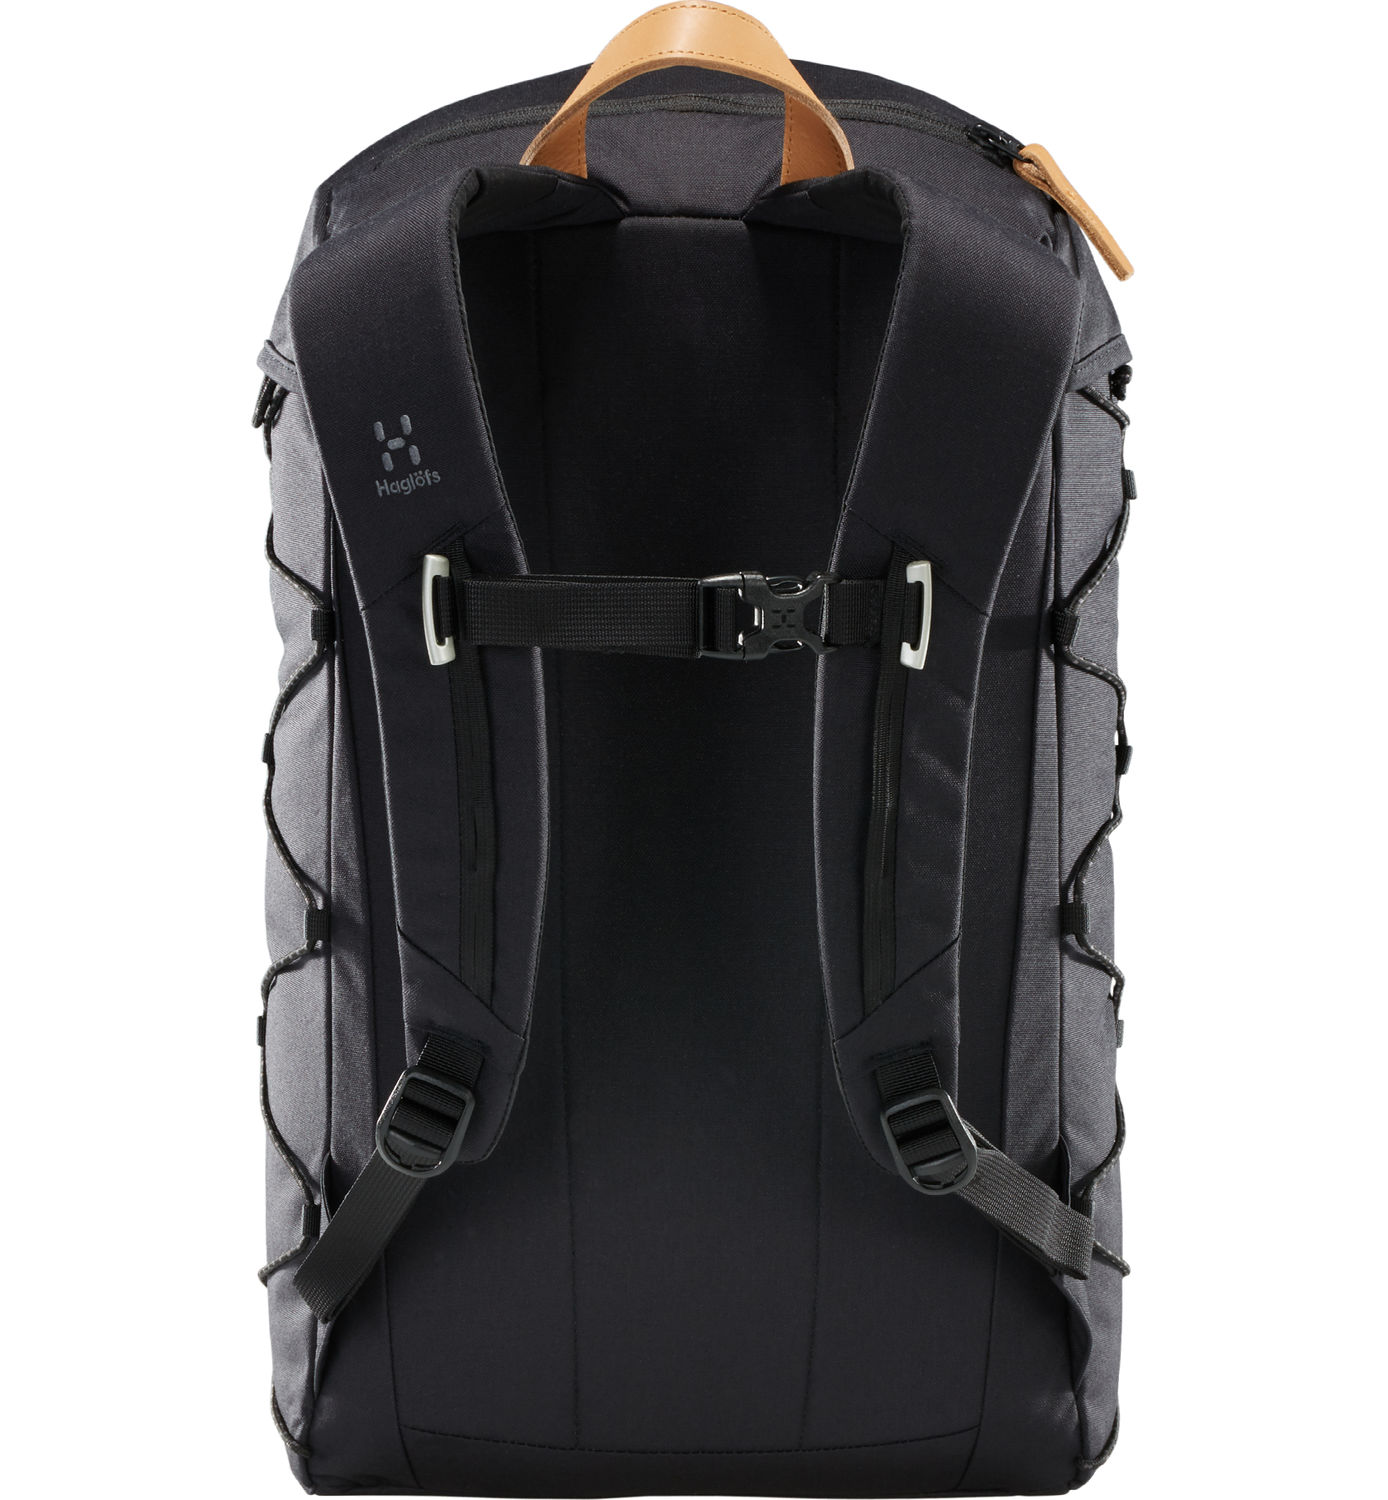 Рюкзак Haglofs ShoSho Medium True Black - Фото 4 большая